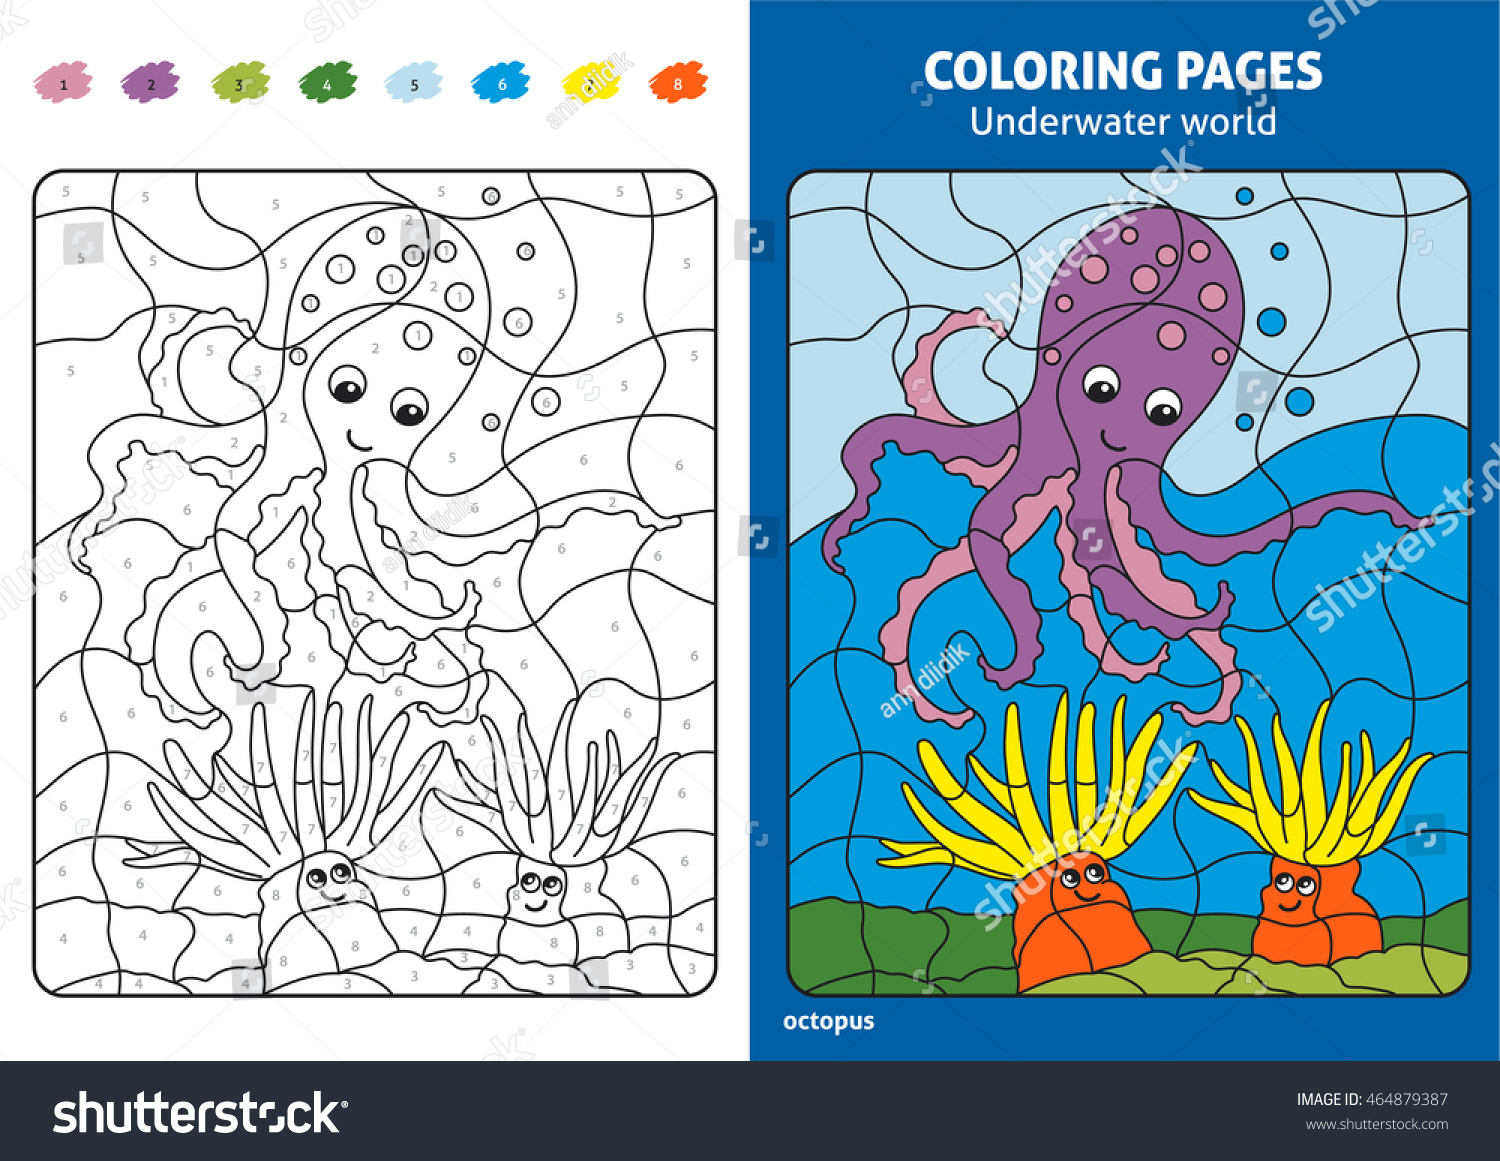 Underwater World Coloring Page Kids Octopus Stock Vector (Royalty ...